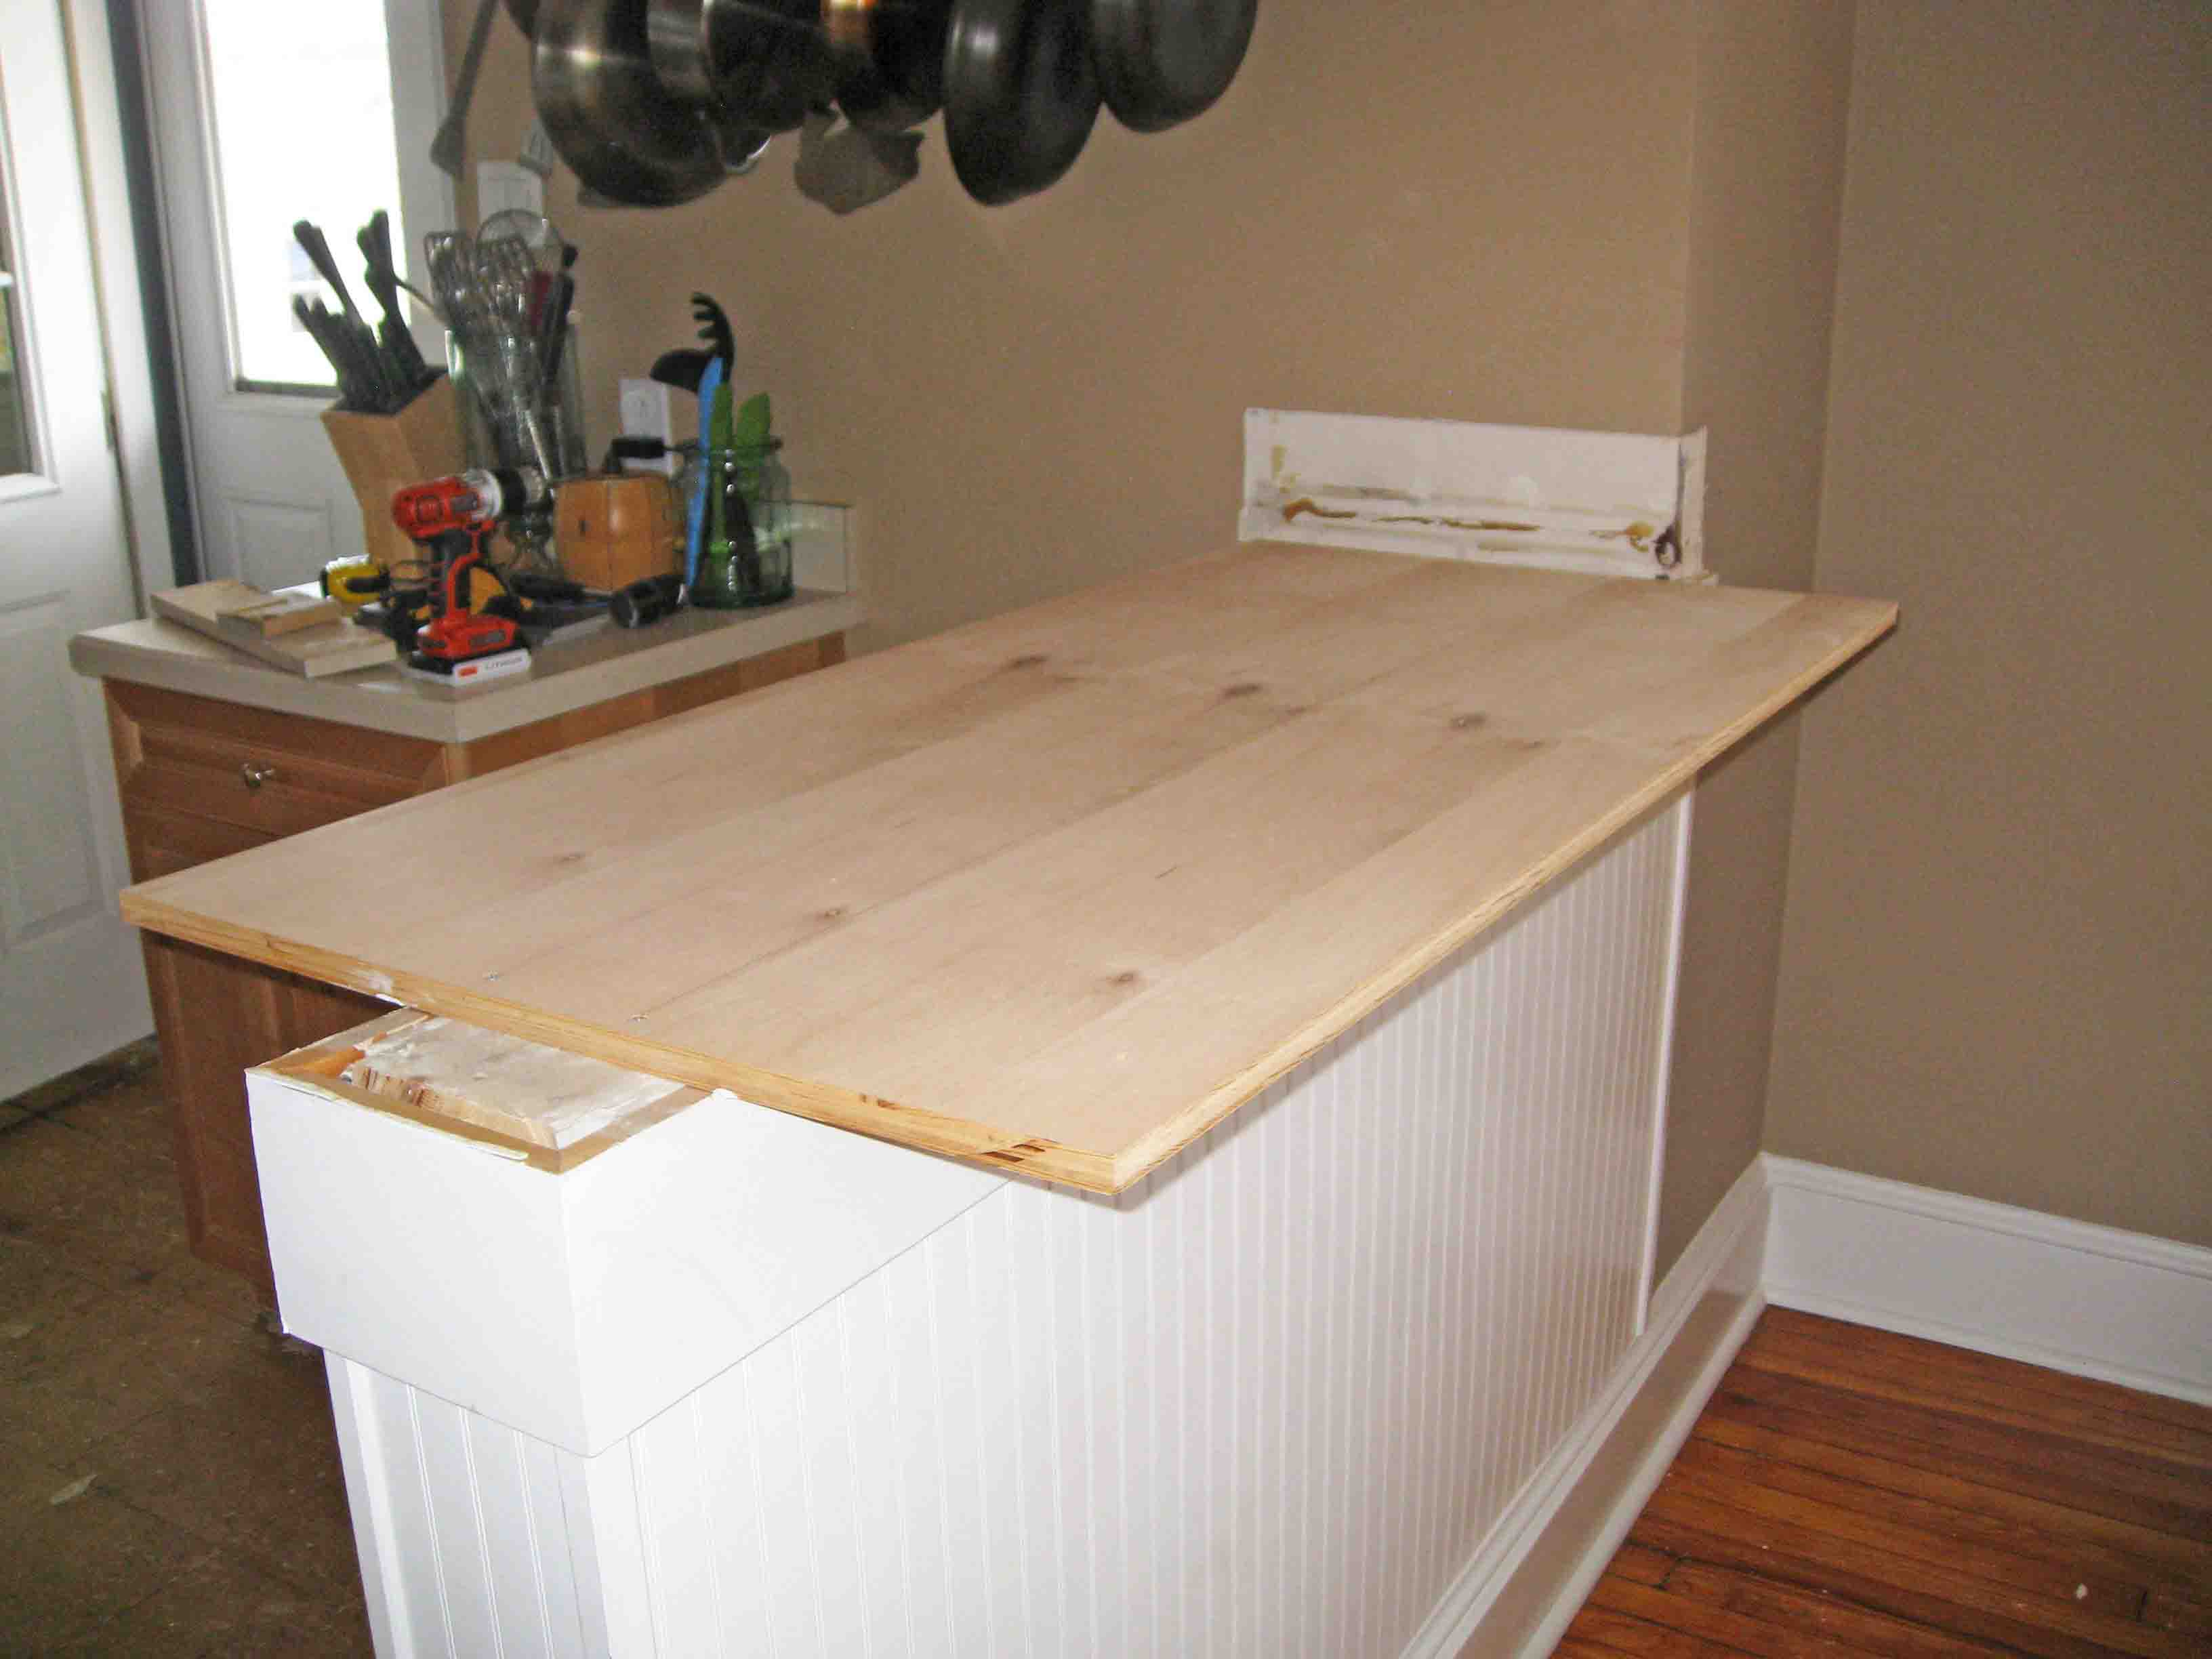 How To Build A Laminate Countertop Sunshineandsawdust